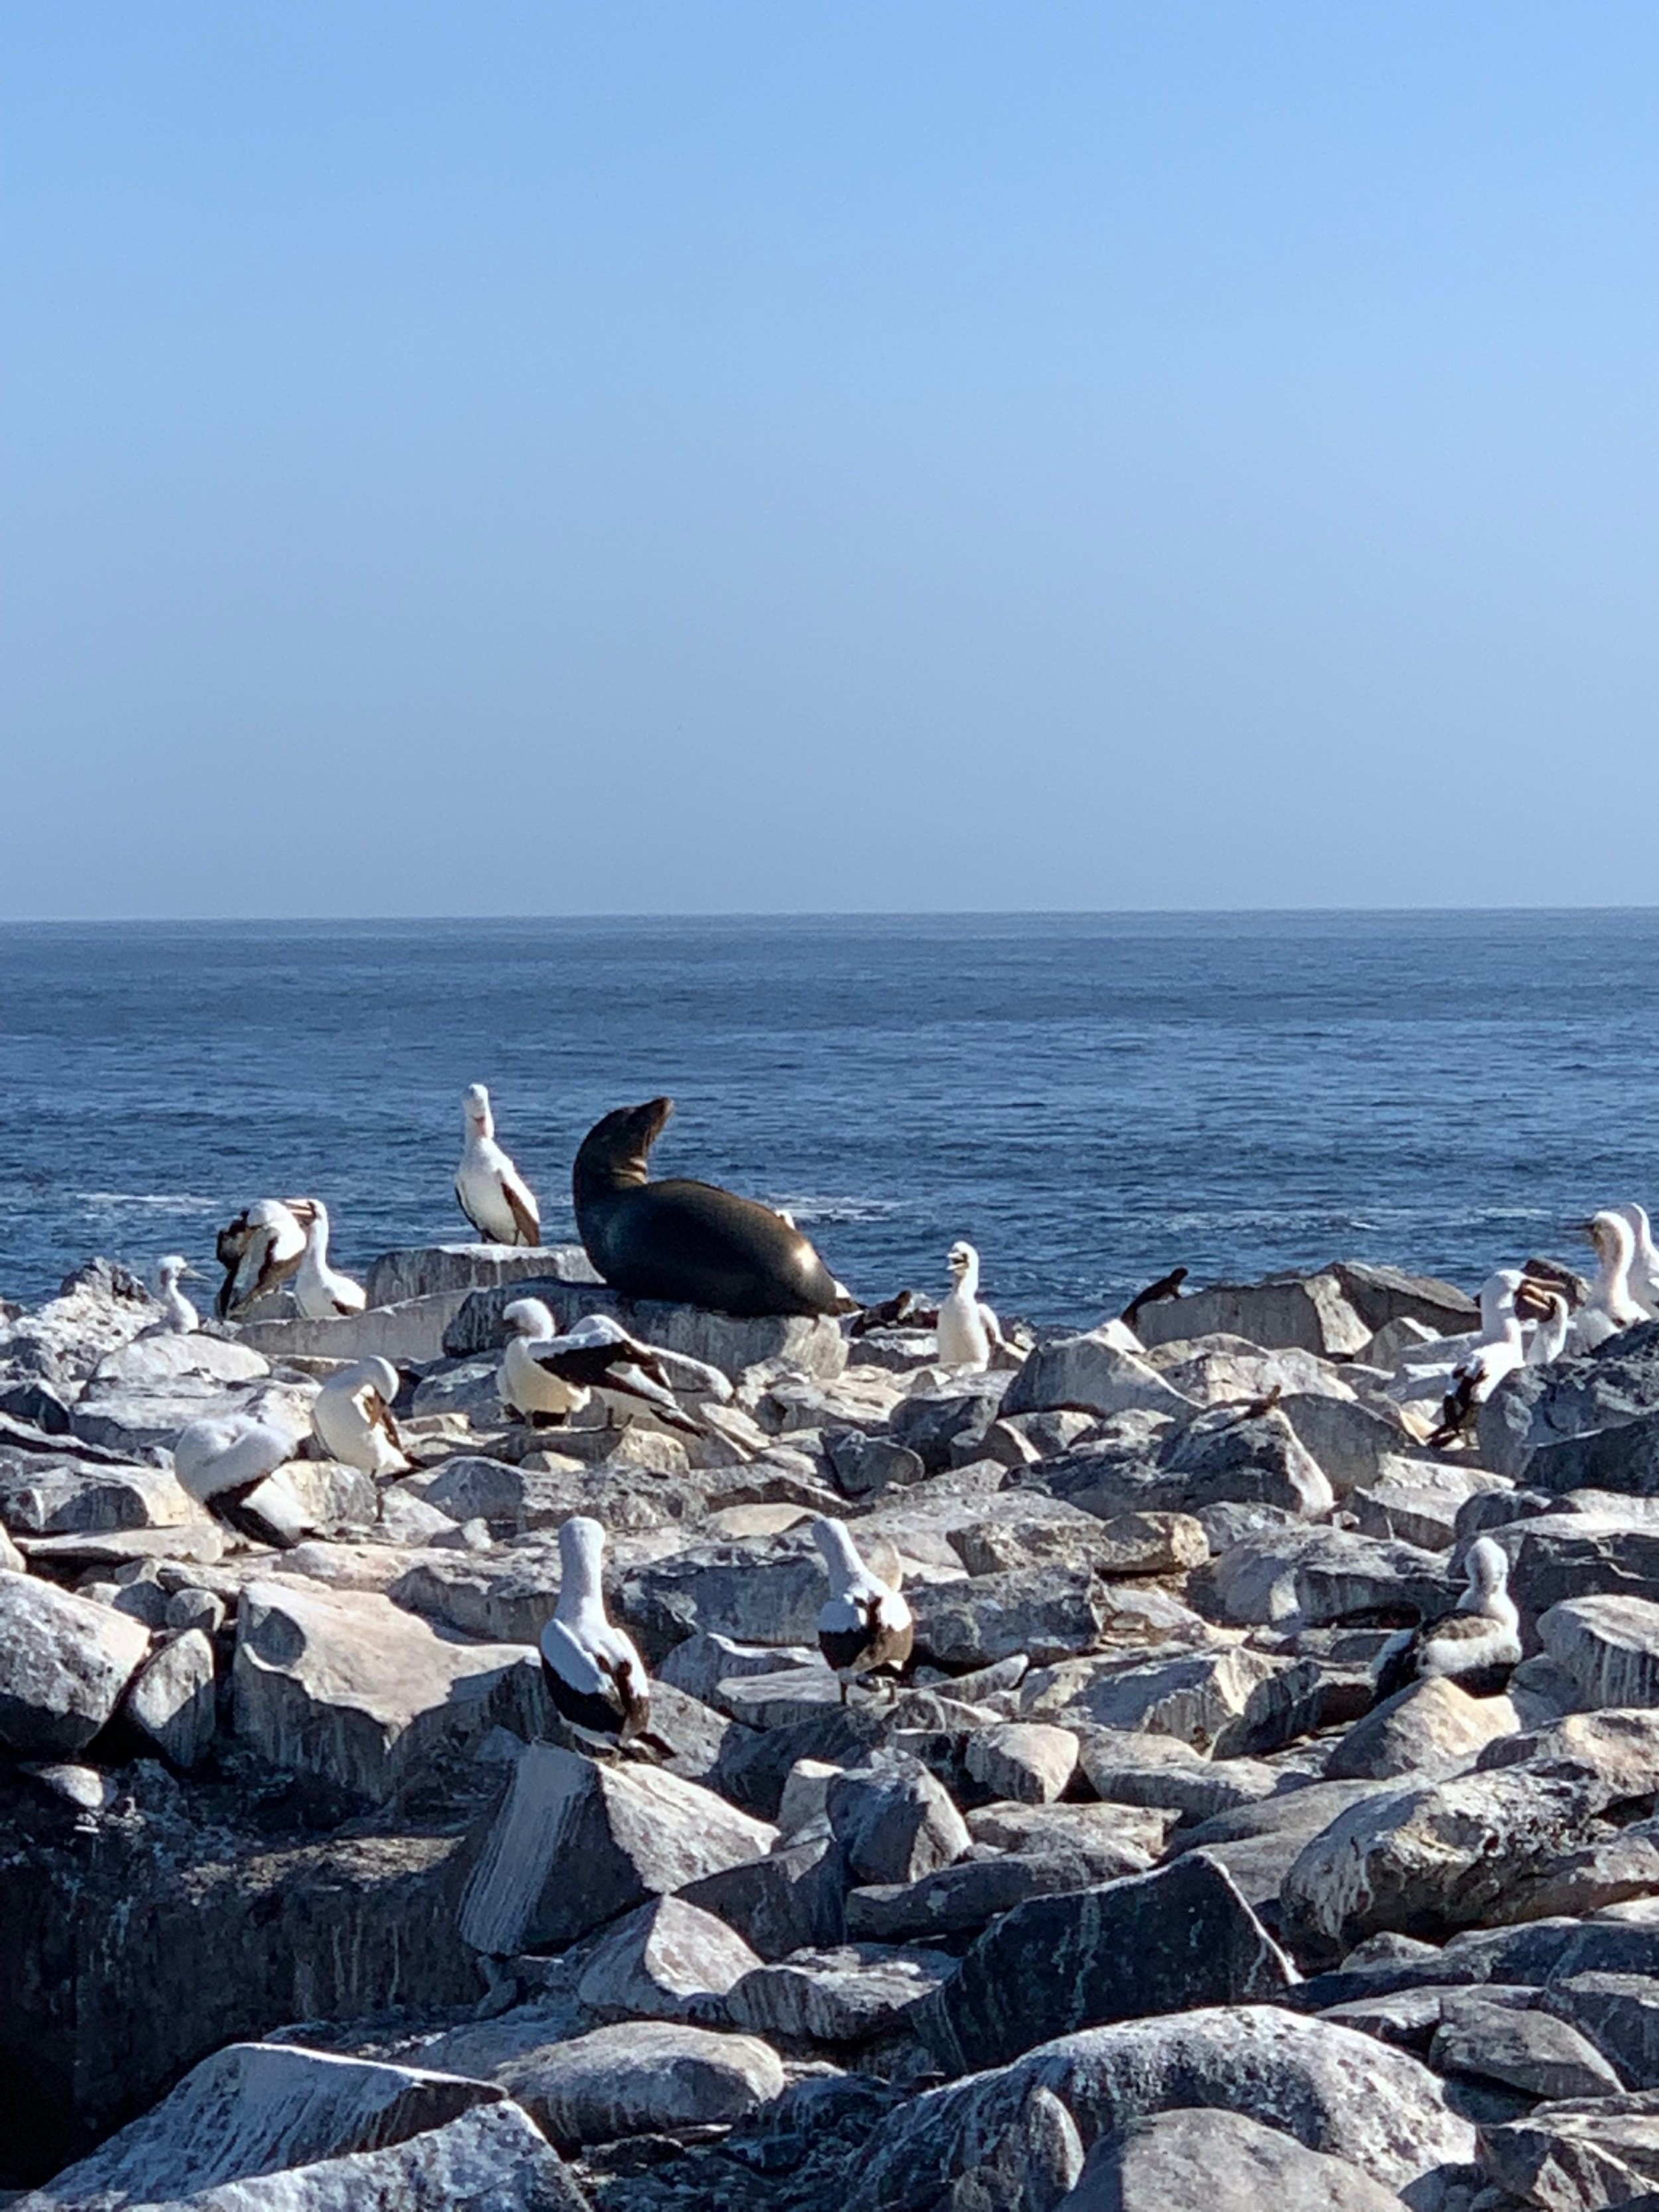 Birds and sea-lions everywhere.